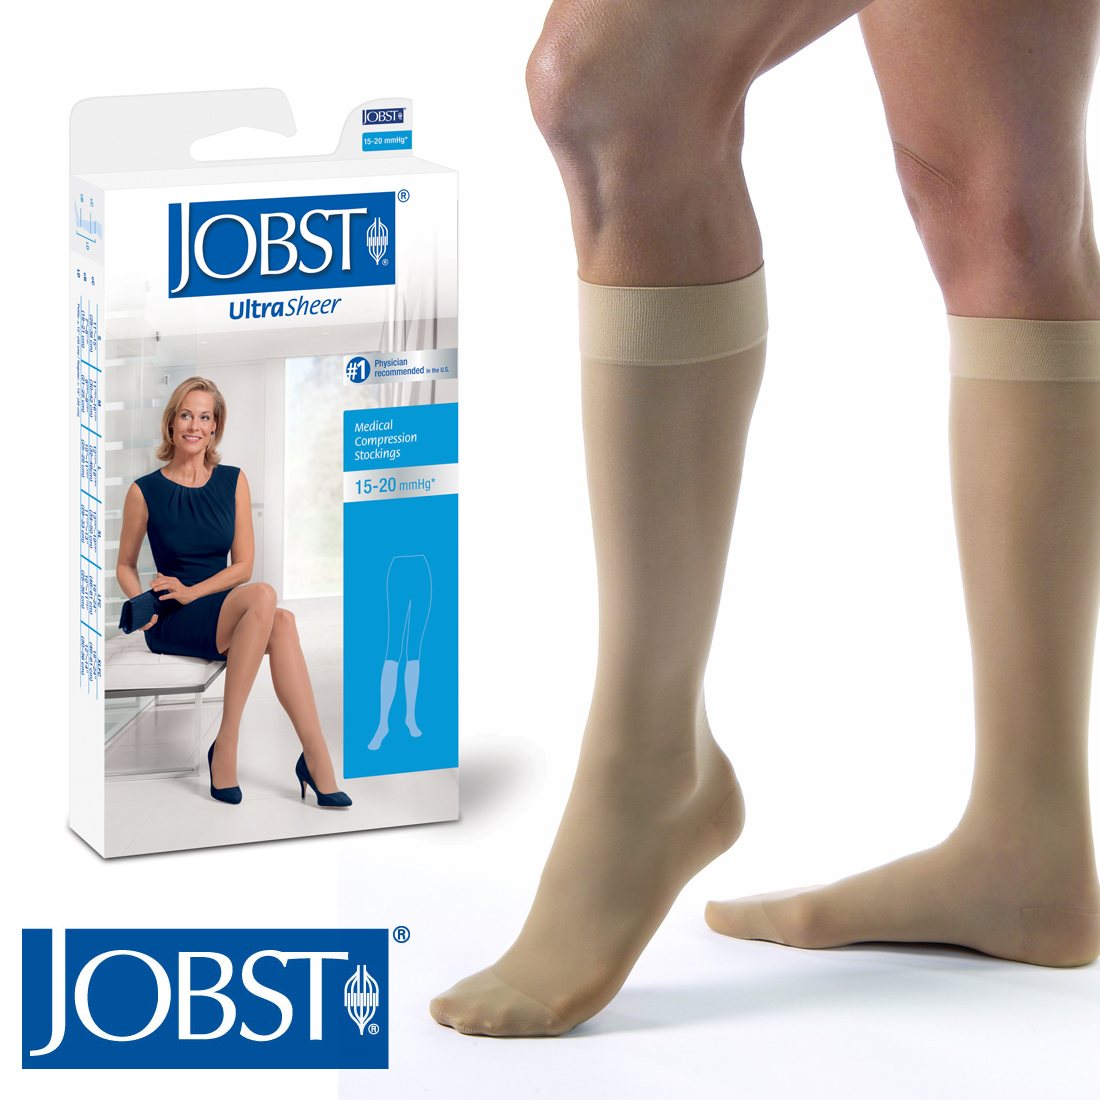 50fbc2145 Jobst Women UltraSheer Stockings 15-20 mmhg Compression Knee High Support  Socks